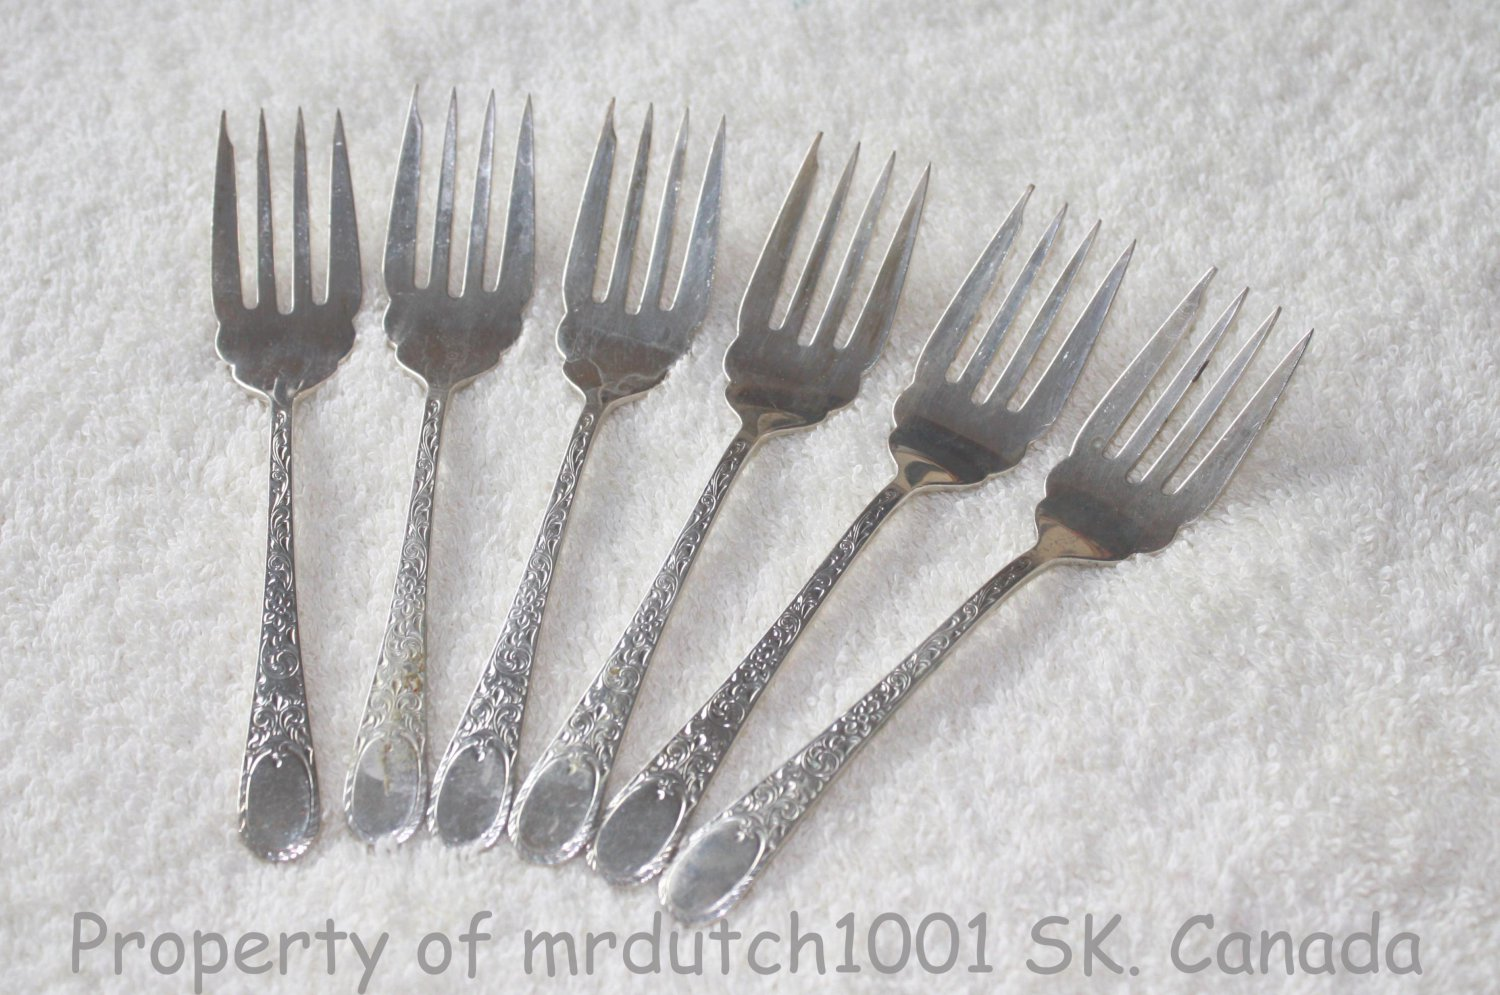 SALE PENDING>>>6 Birks London Engraved Sterling 1914 No Monograms Birks Silver Salad Forks